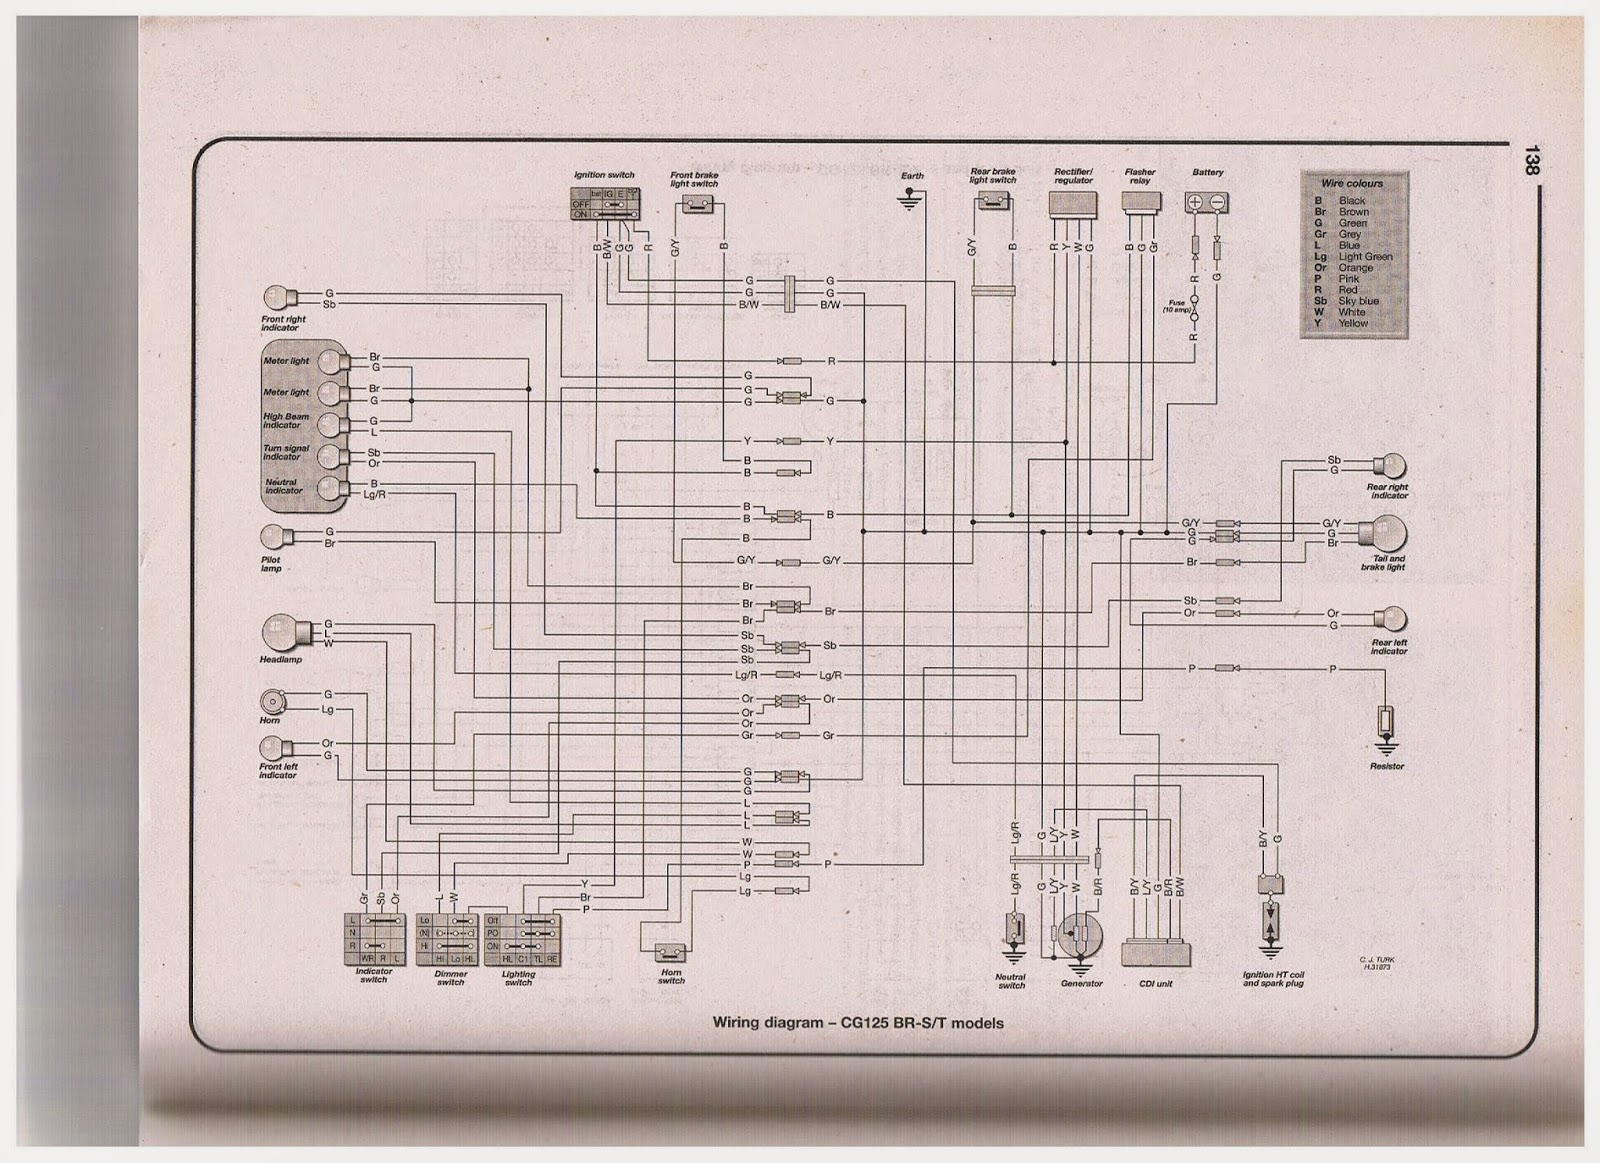 cl360 wiring diagram snatch block diagrams wiring diagram